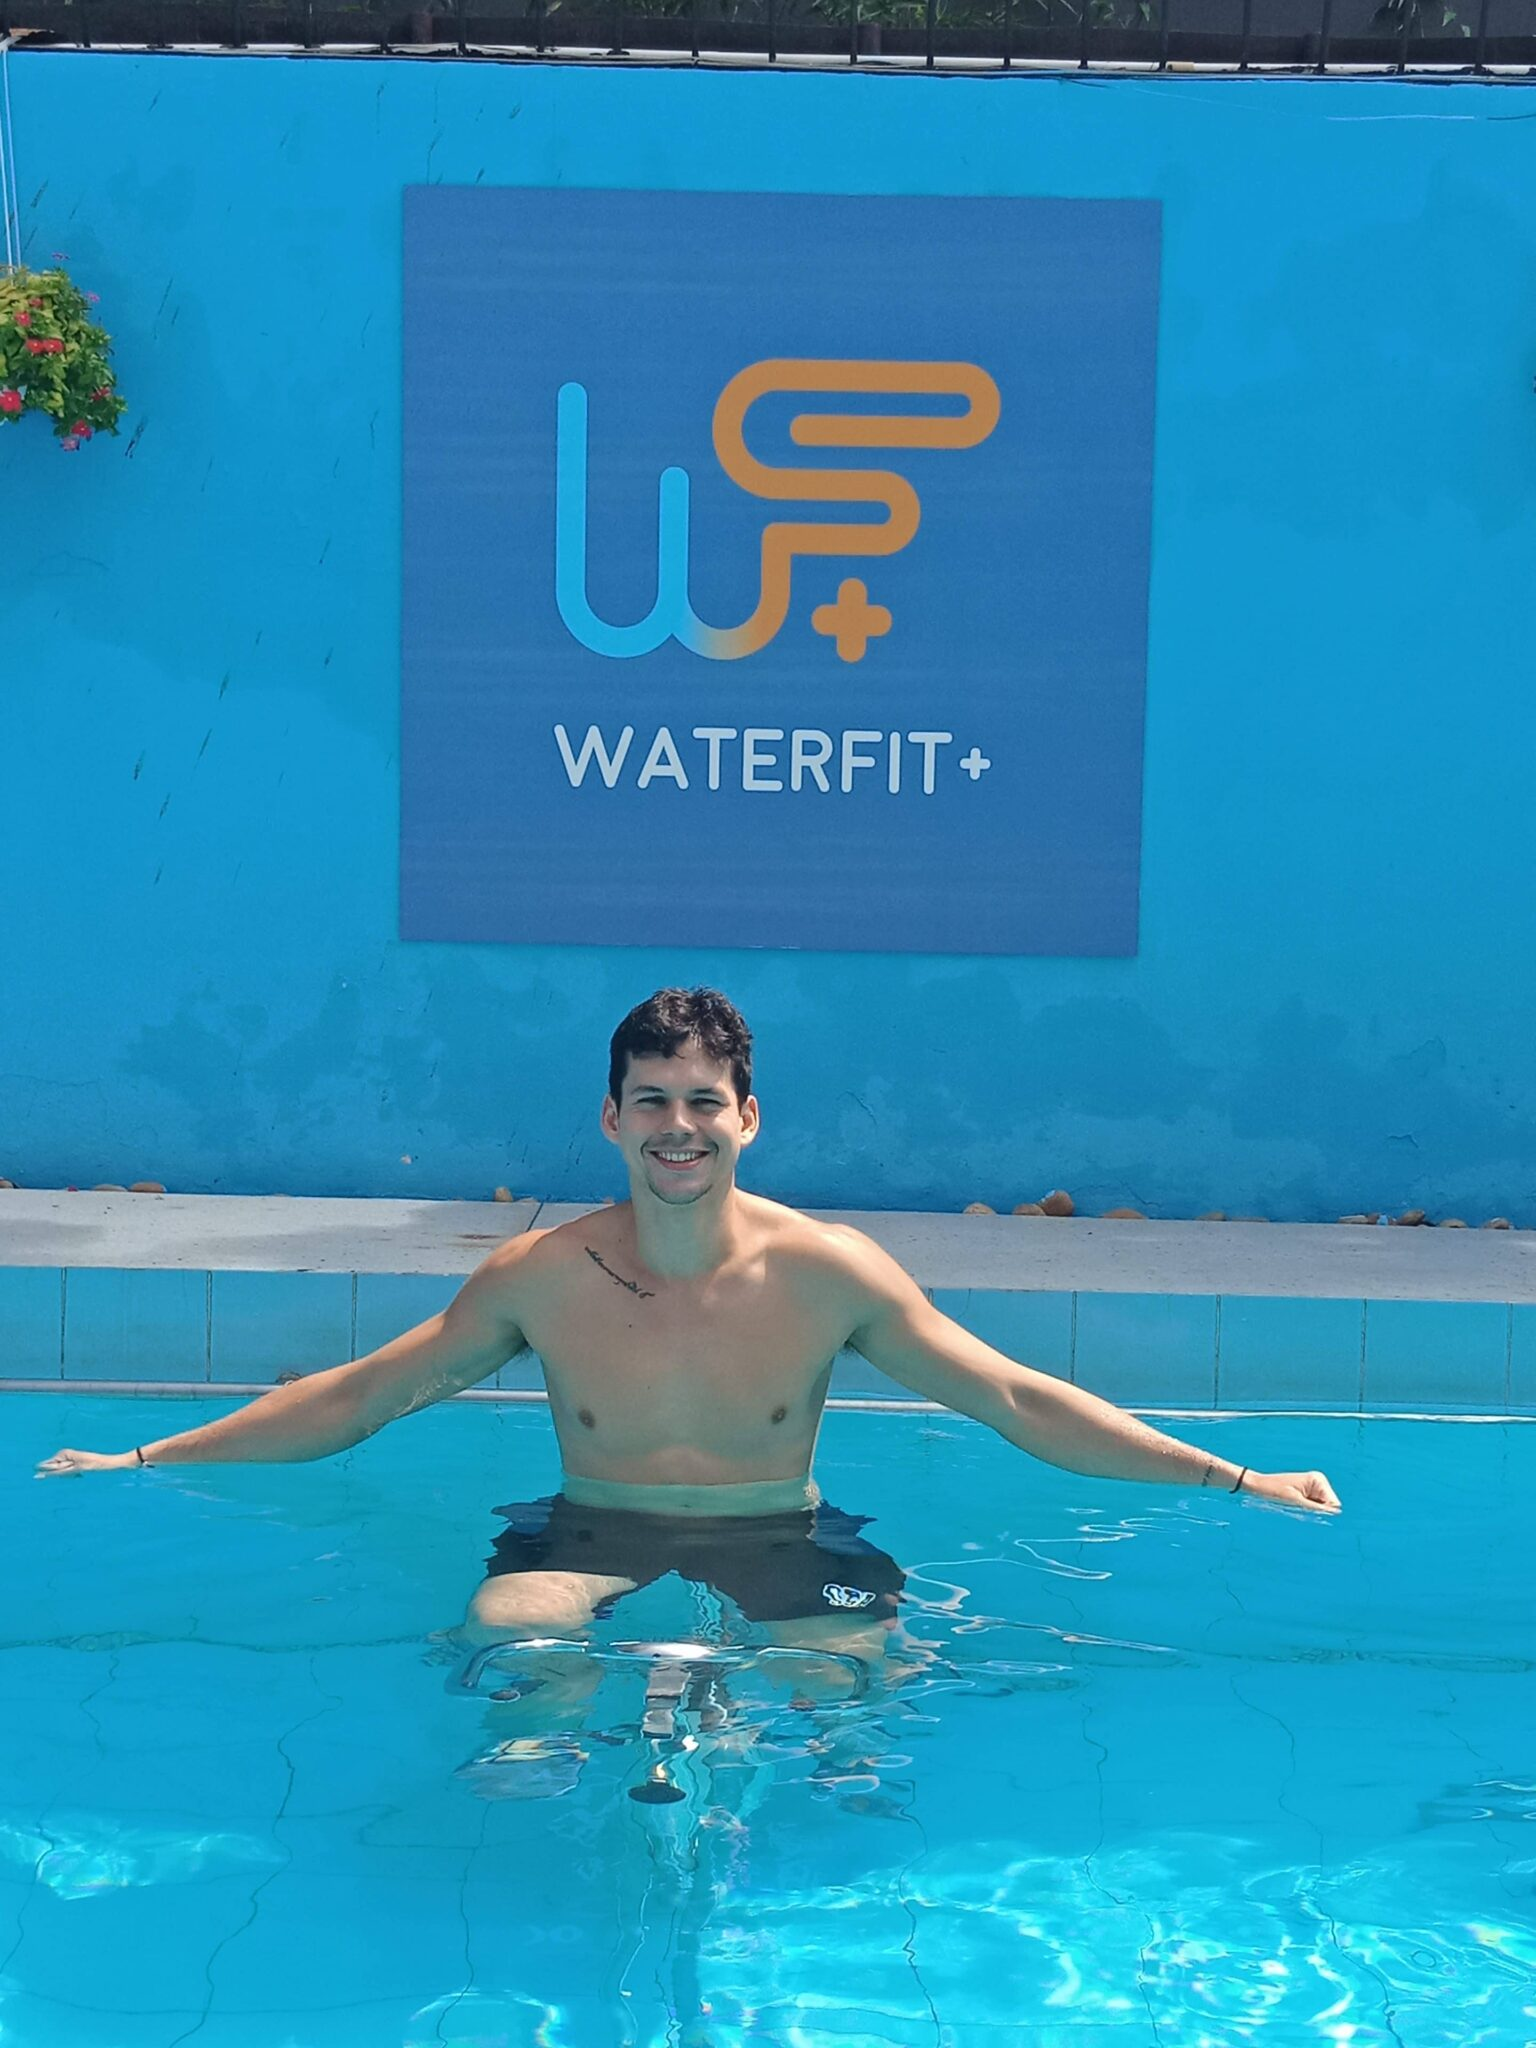 Coach WATERFIT+ gym in the water